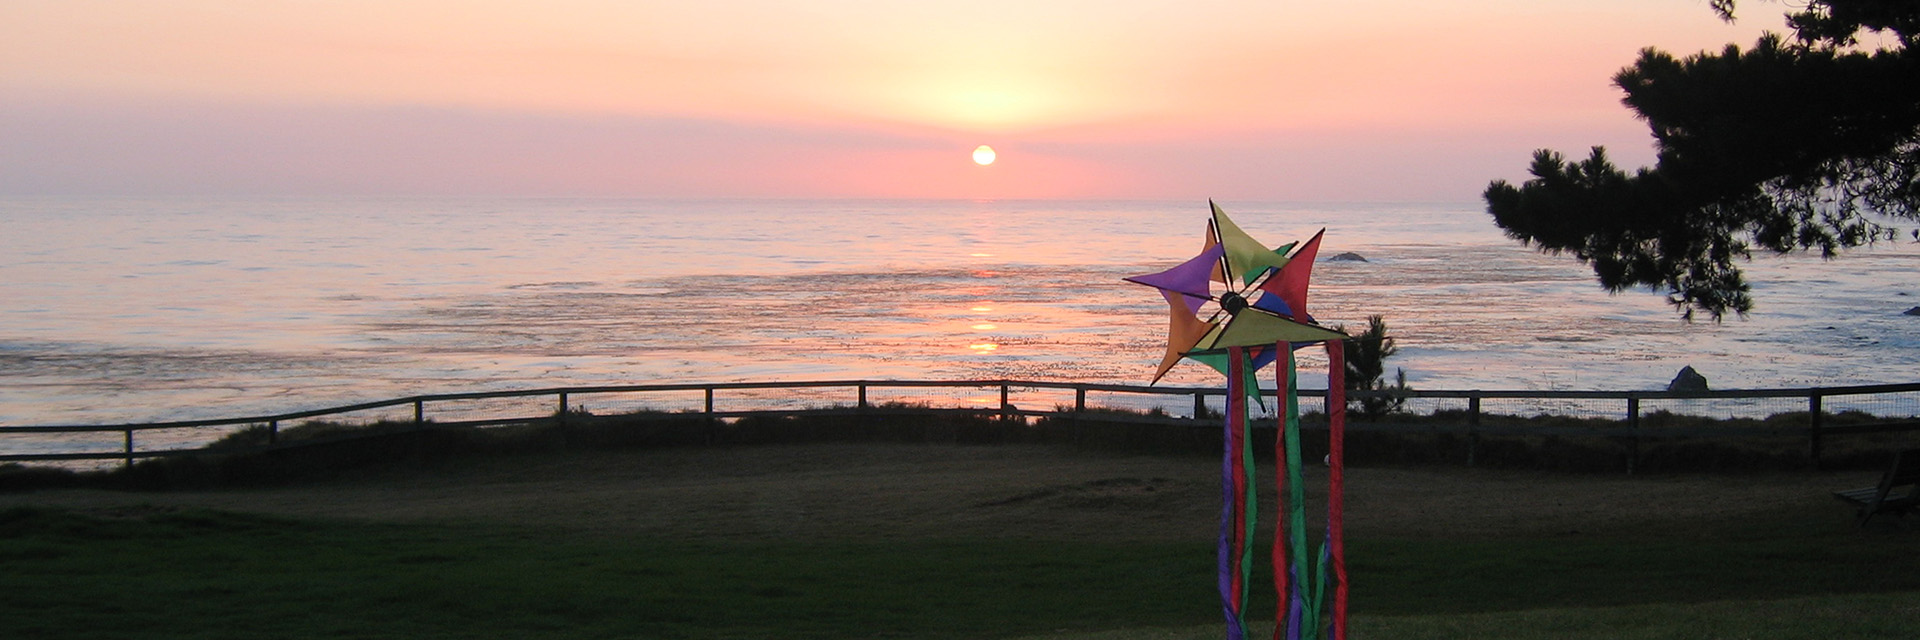 Sunset Whimsey at Esalen